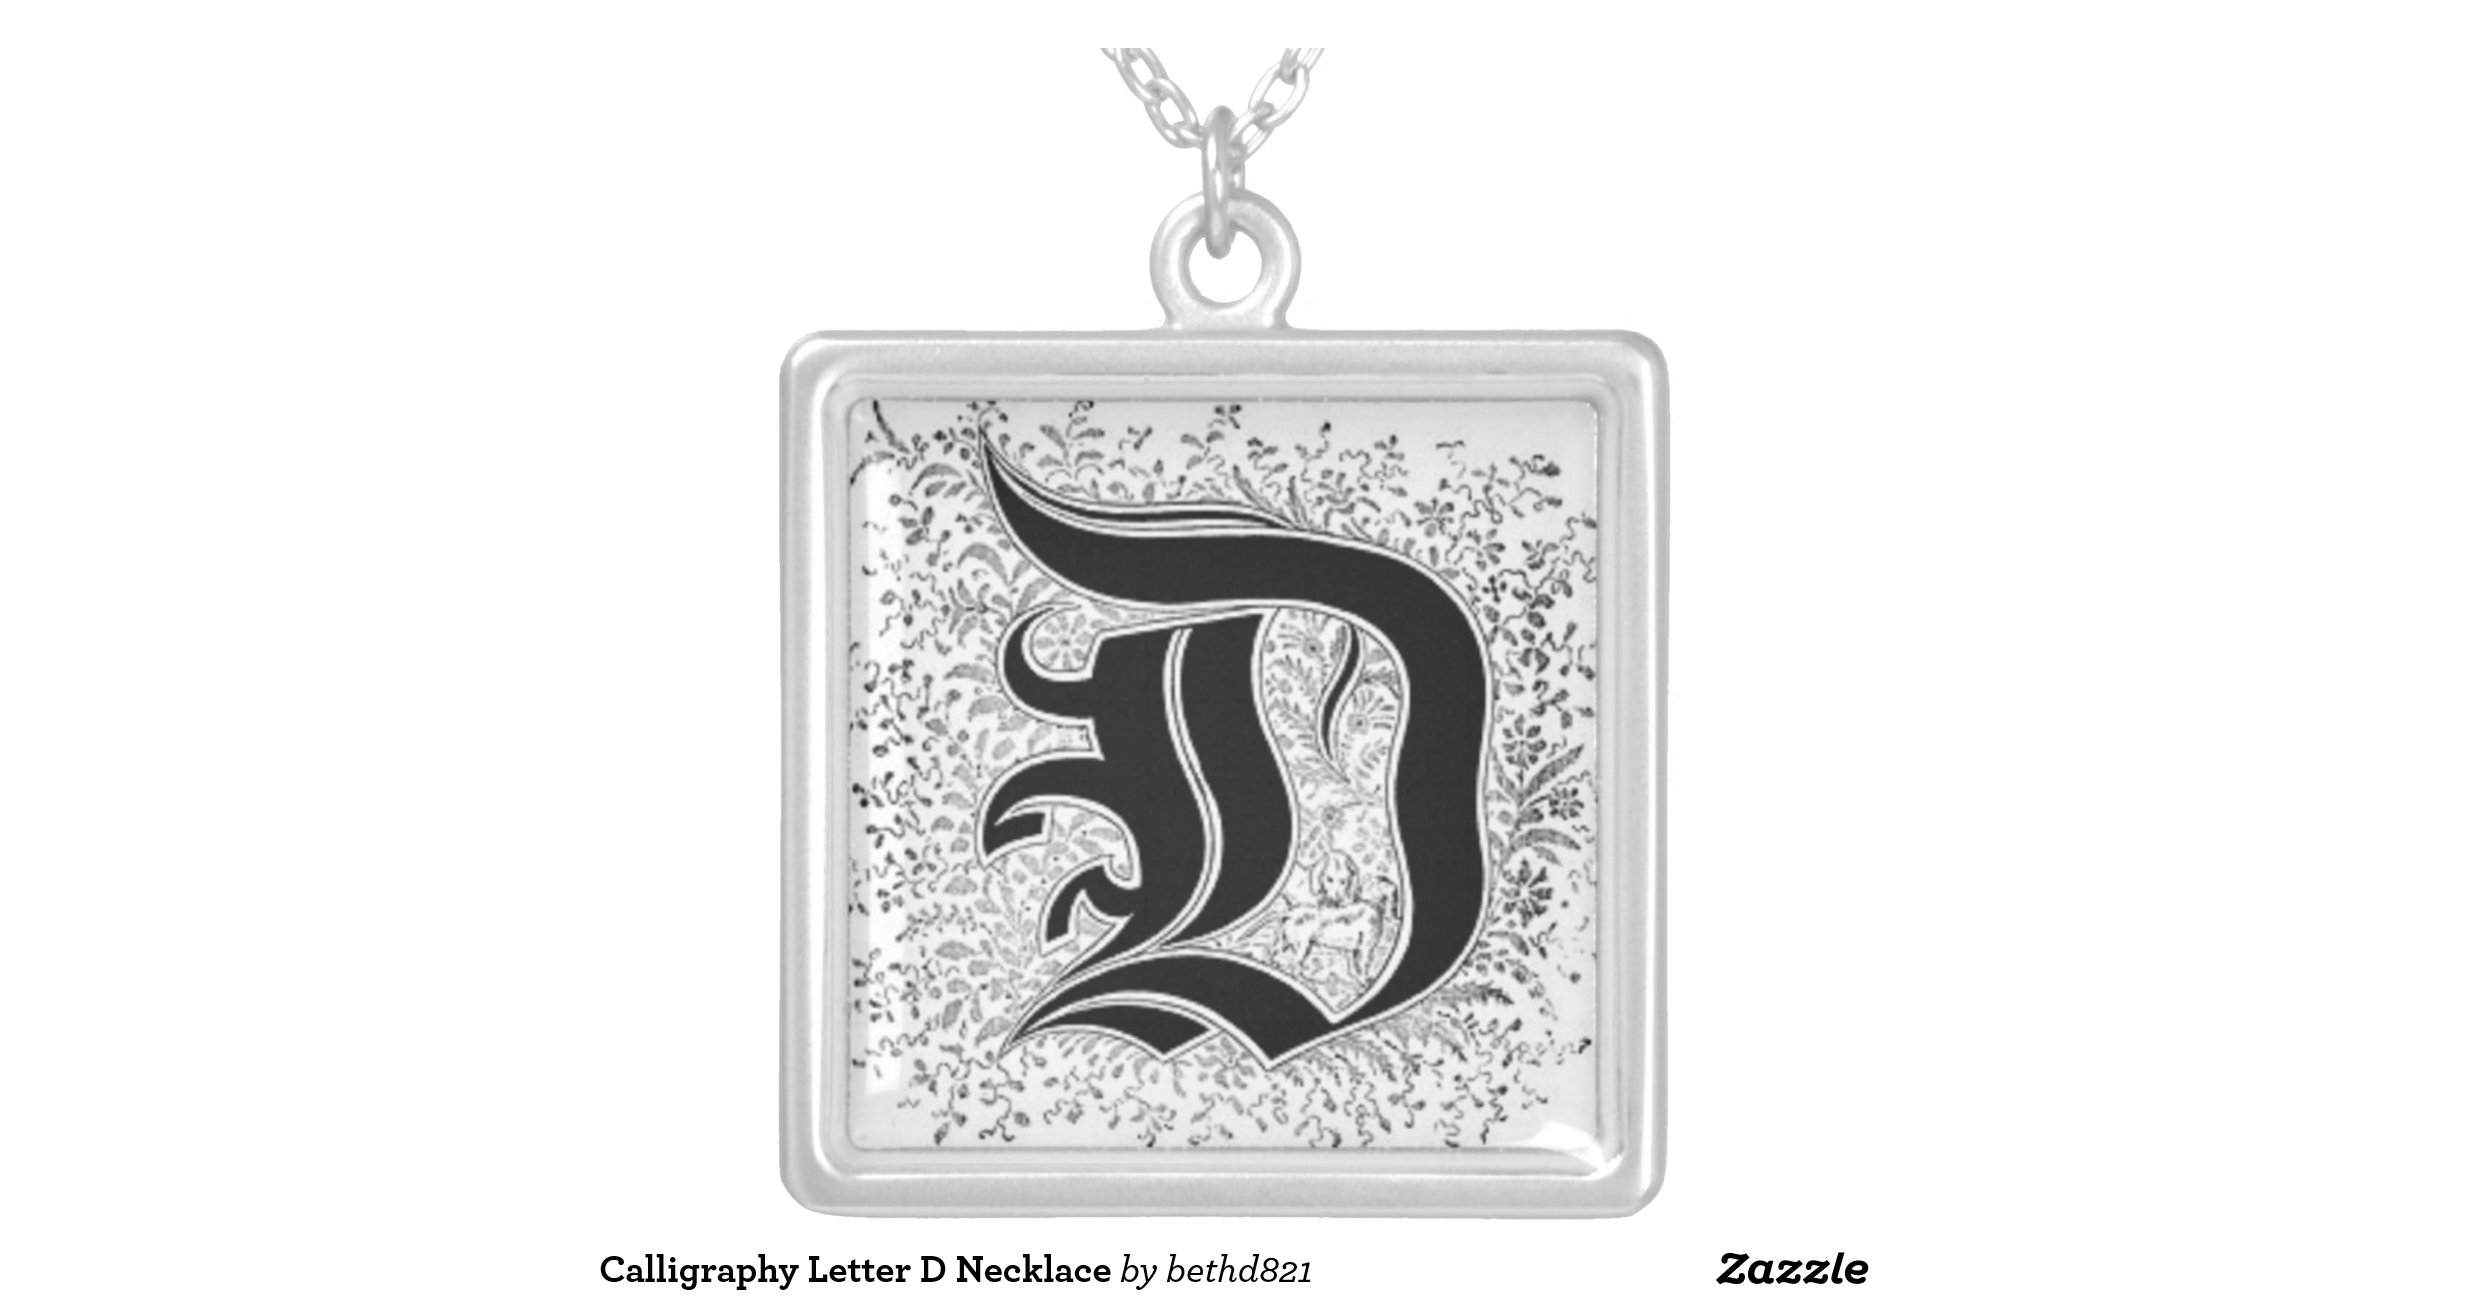 Calligraphy Letter D Necklace